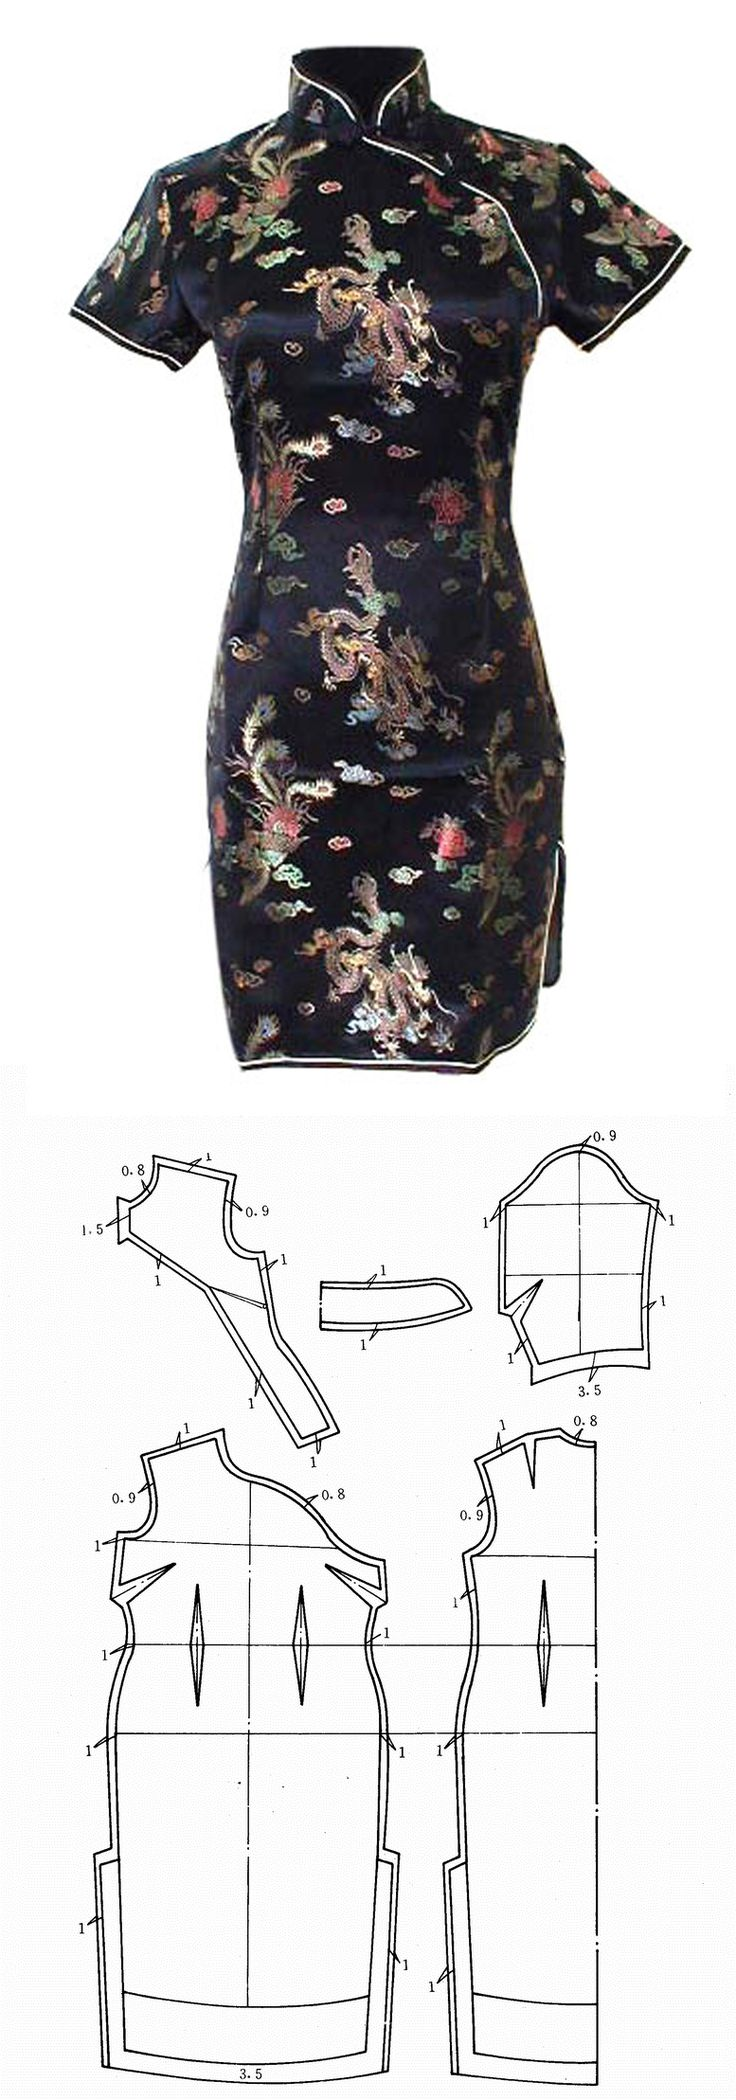 qipao - Tradicional chinese dress pattern                                                                                                                                                      More